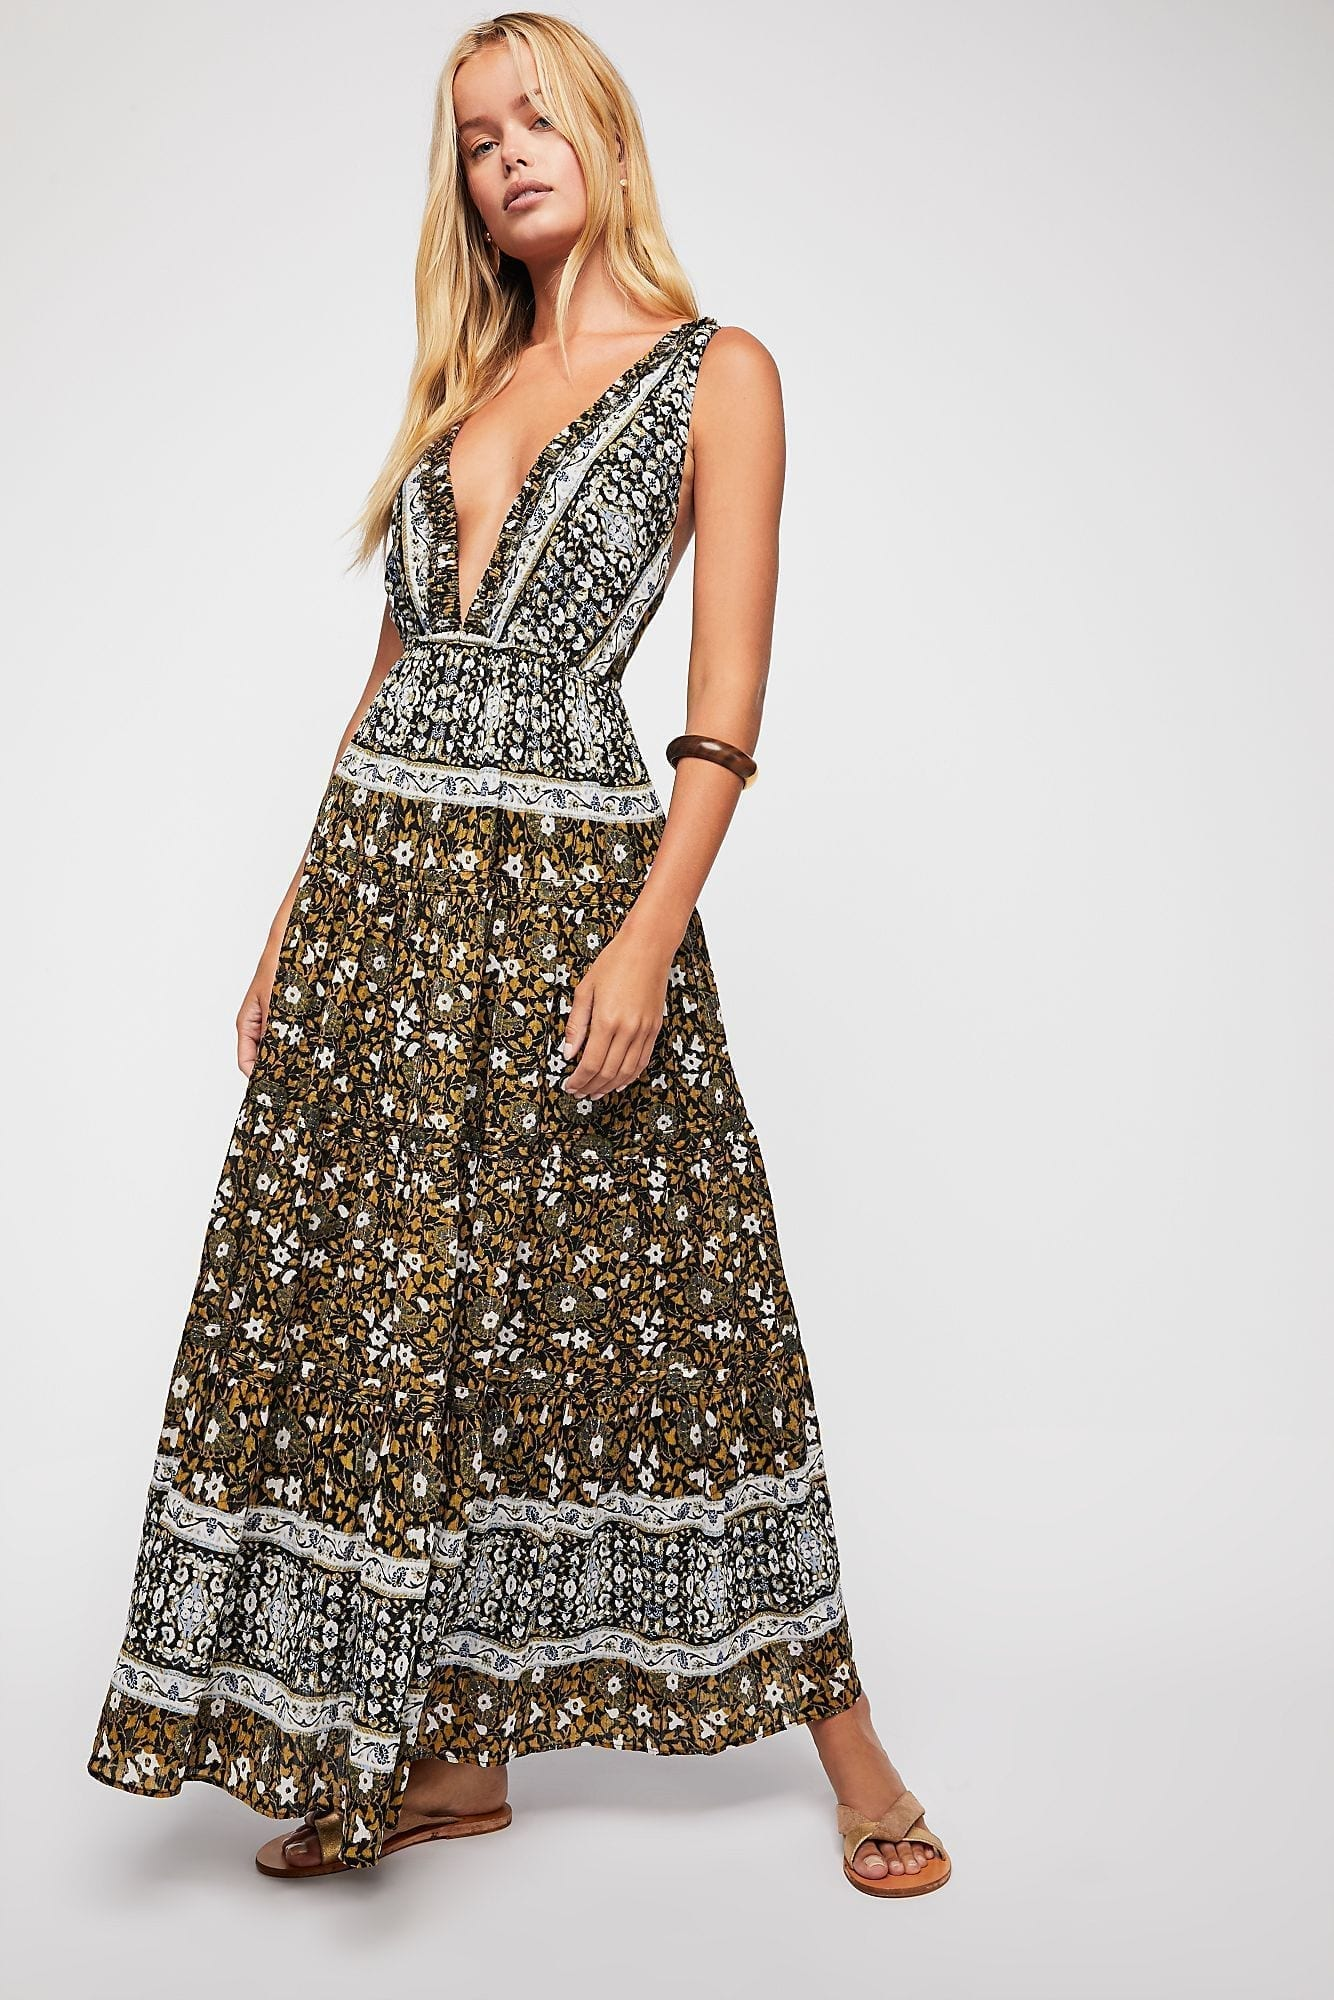 fa1225e42c3 FREEPEOPLE Spring Summer 2018 Collection Archives - We Select Dresses